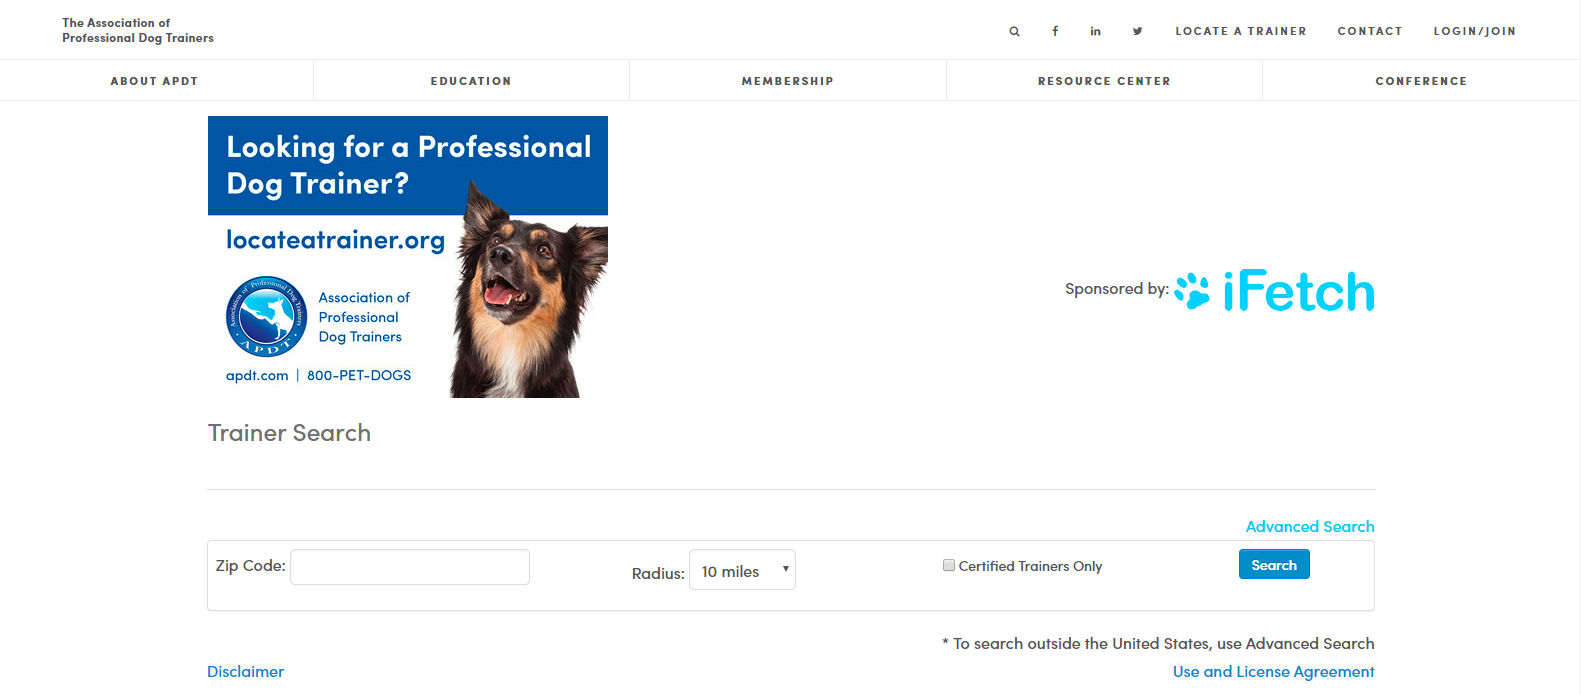 Screenshot of The Association of Professional Dog Trainers website.